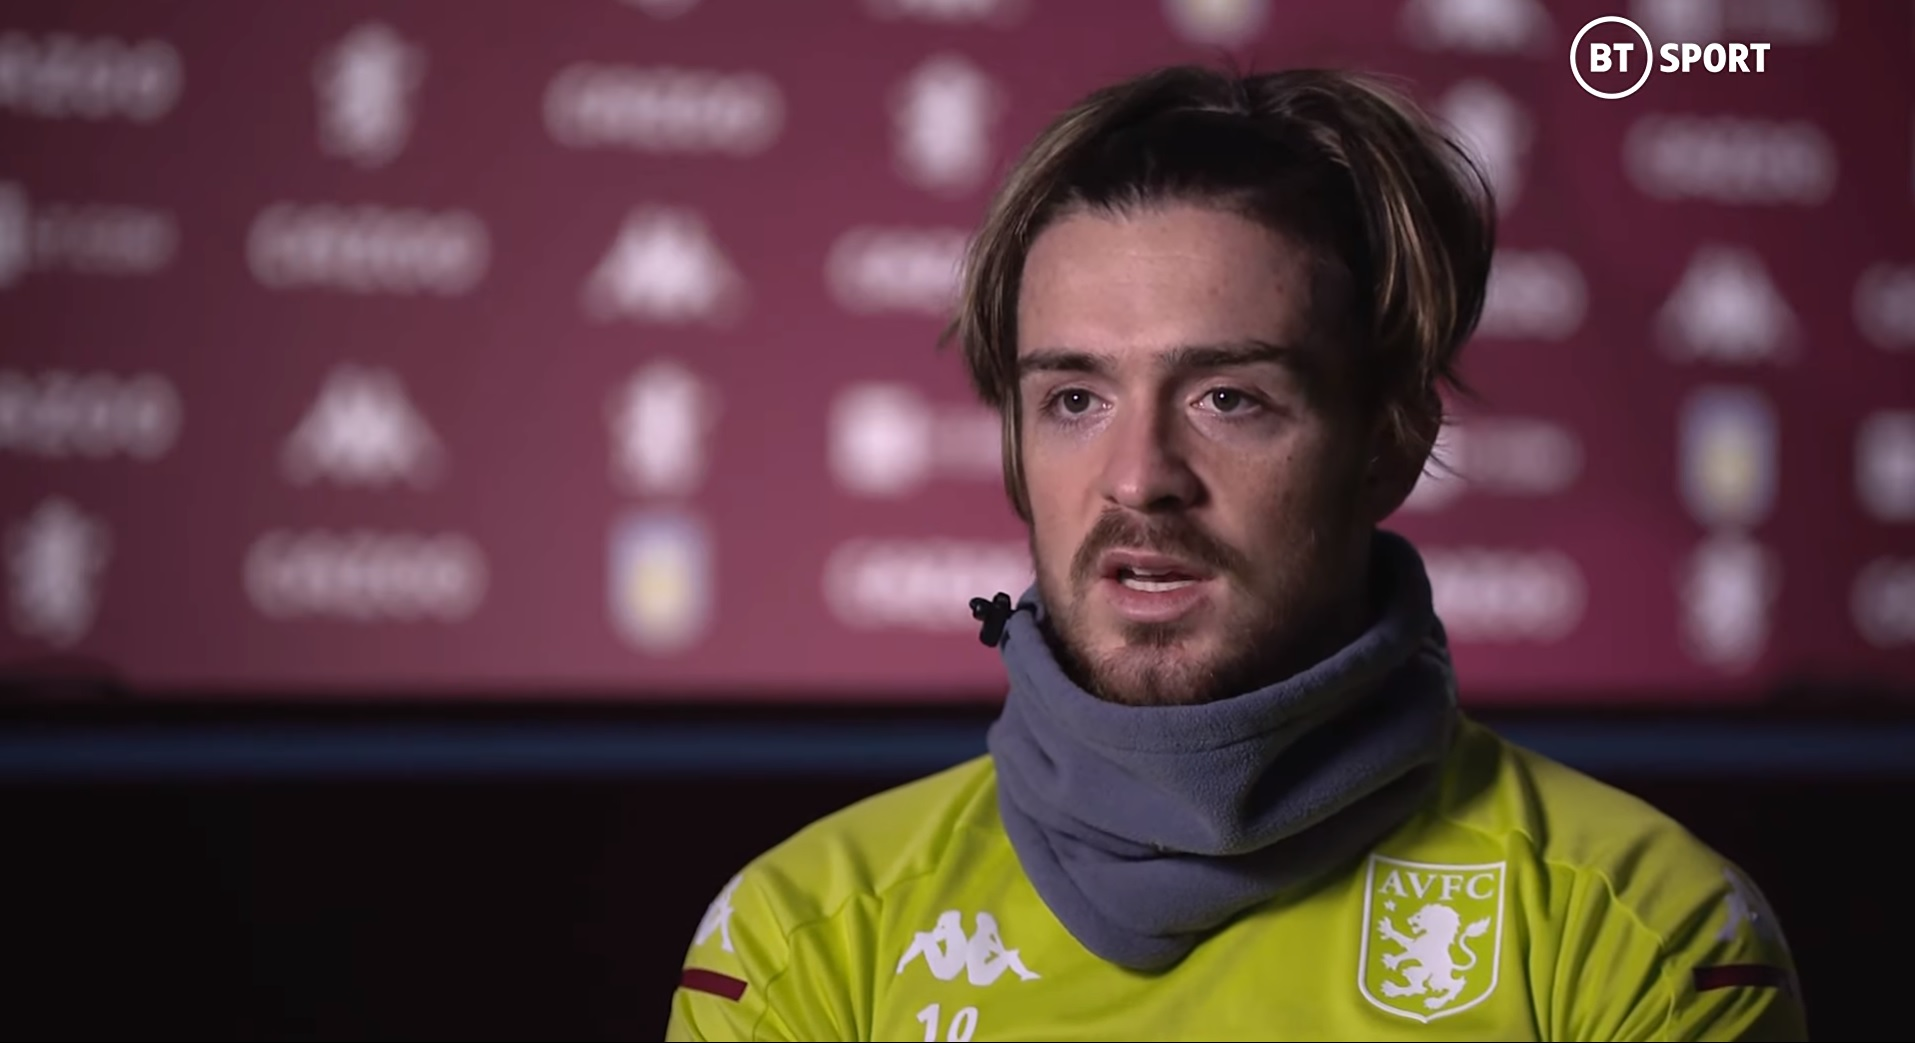 (Video) Grealish admits he watched clips of former LFC star to improve his game